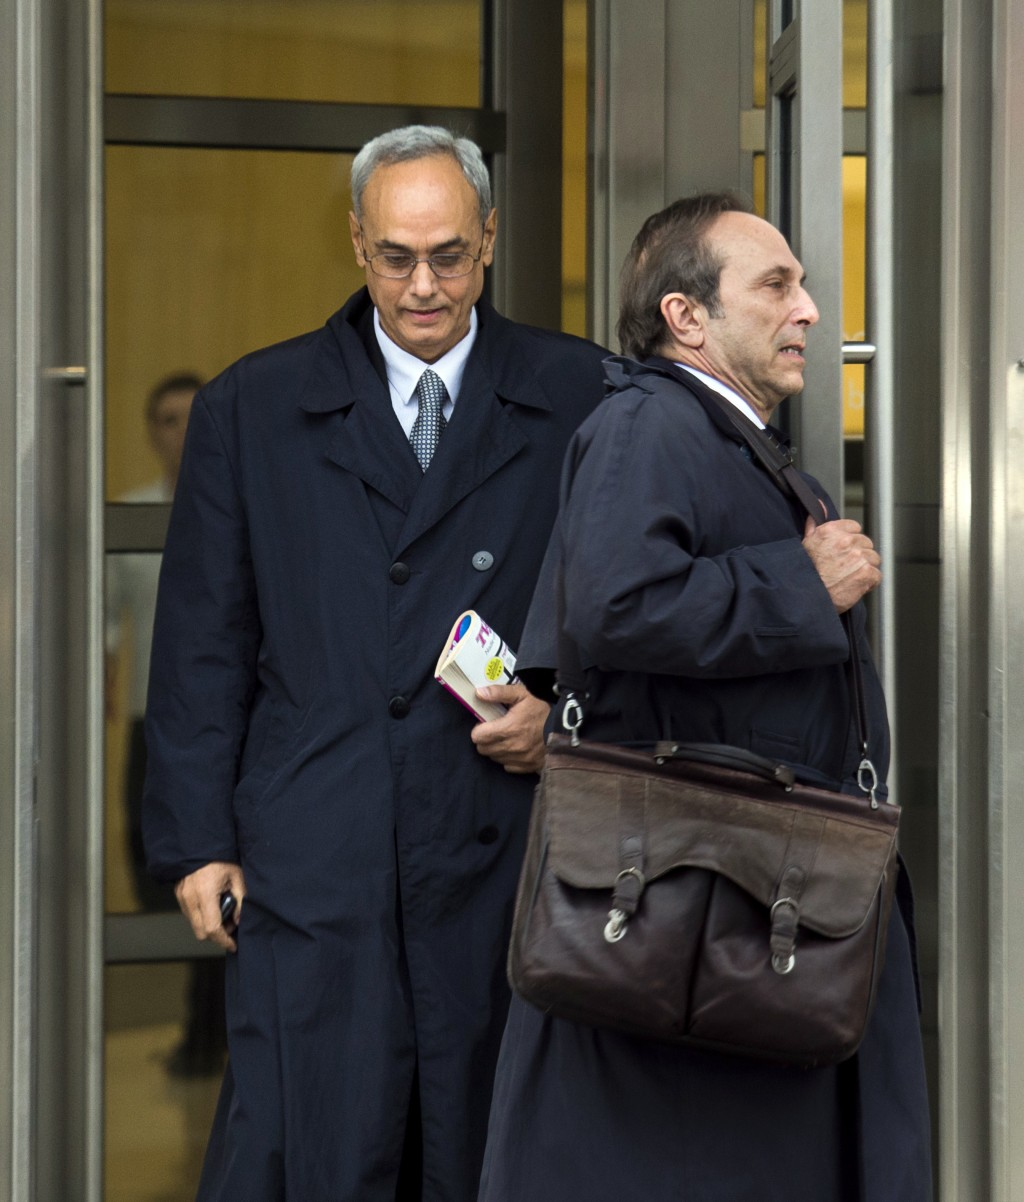 Manuel Burga, left, the former president of Peru's soccer federation, leaves federal court in the Brooklyn borough of New York, Friday, Dec. 22, 2017....